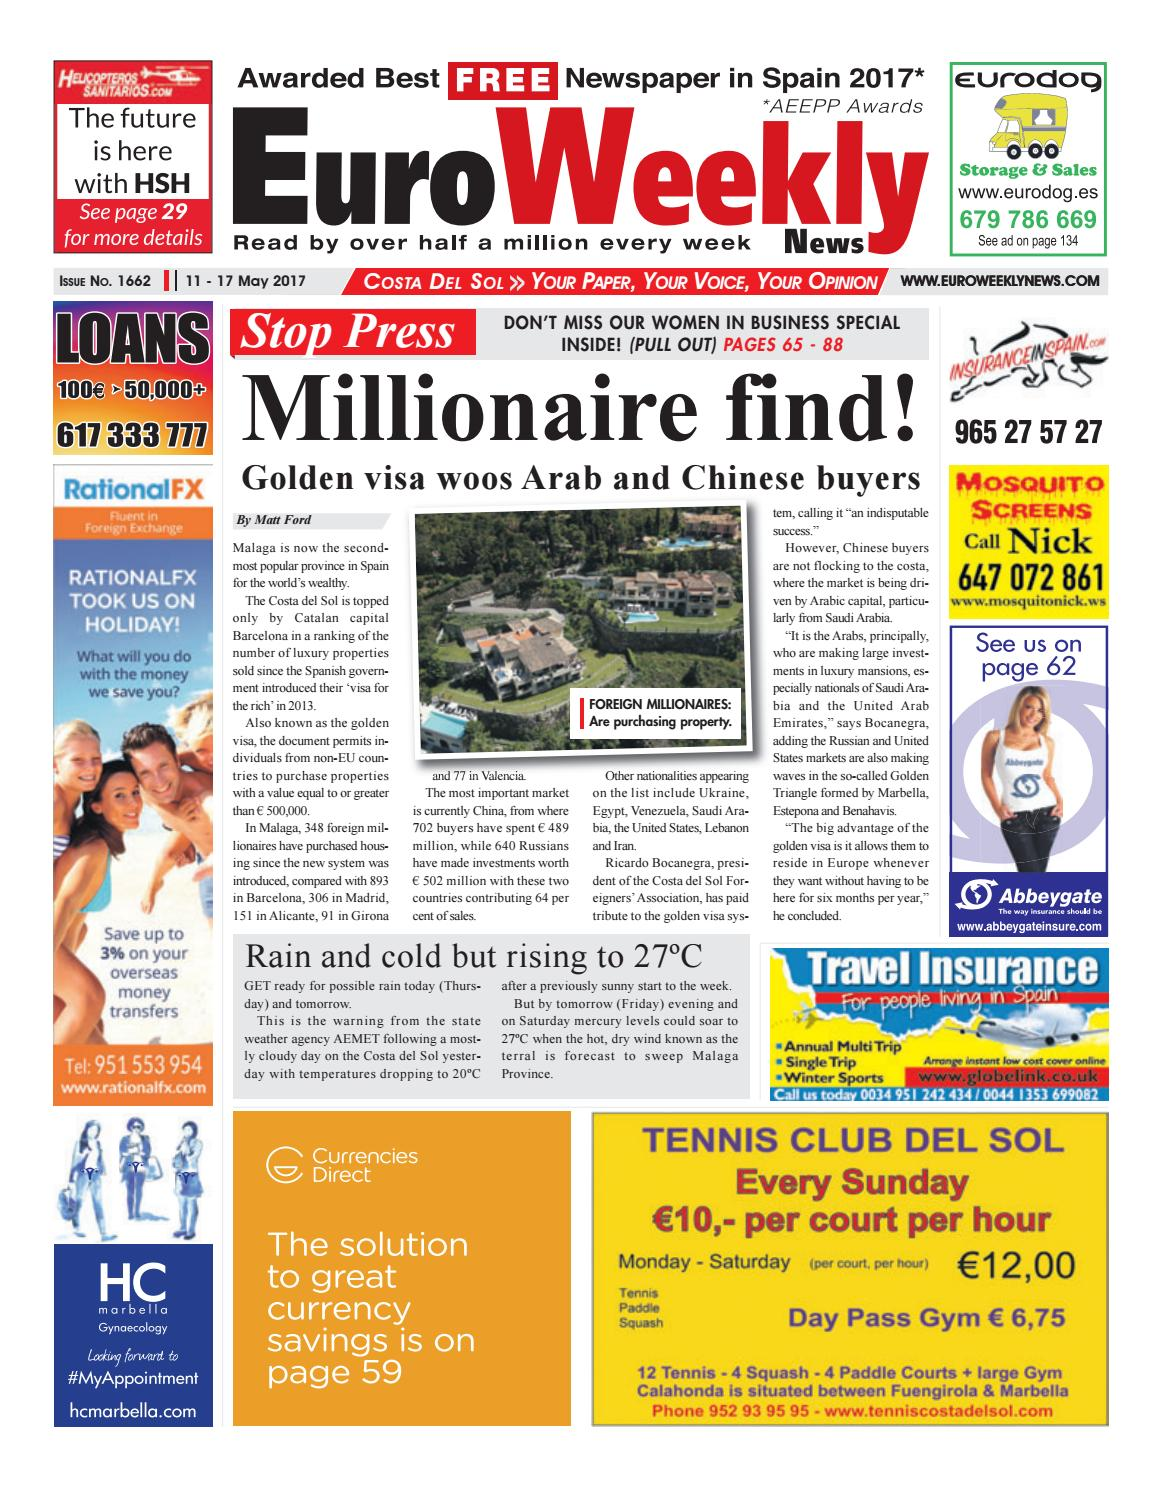 Euro Weekly News - Costa del Sol 11 - 17 May 2017 Issue 1662 by Euro Weekly  News Media S.A. - issuu 145bb2f52